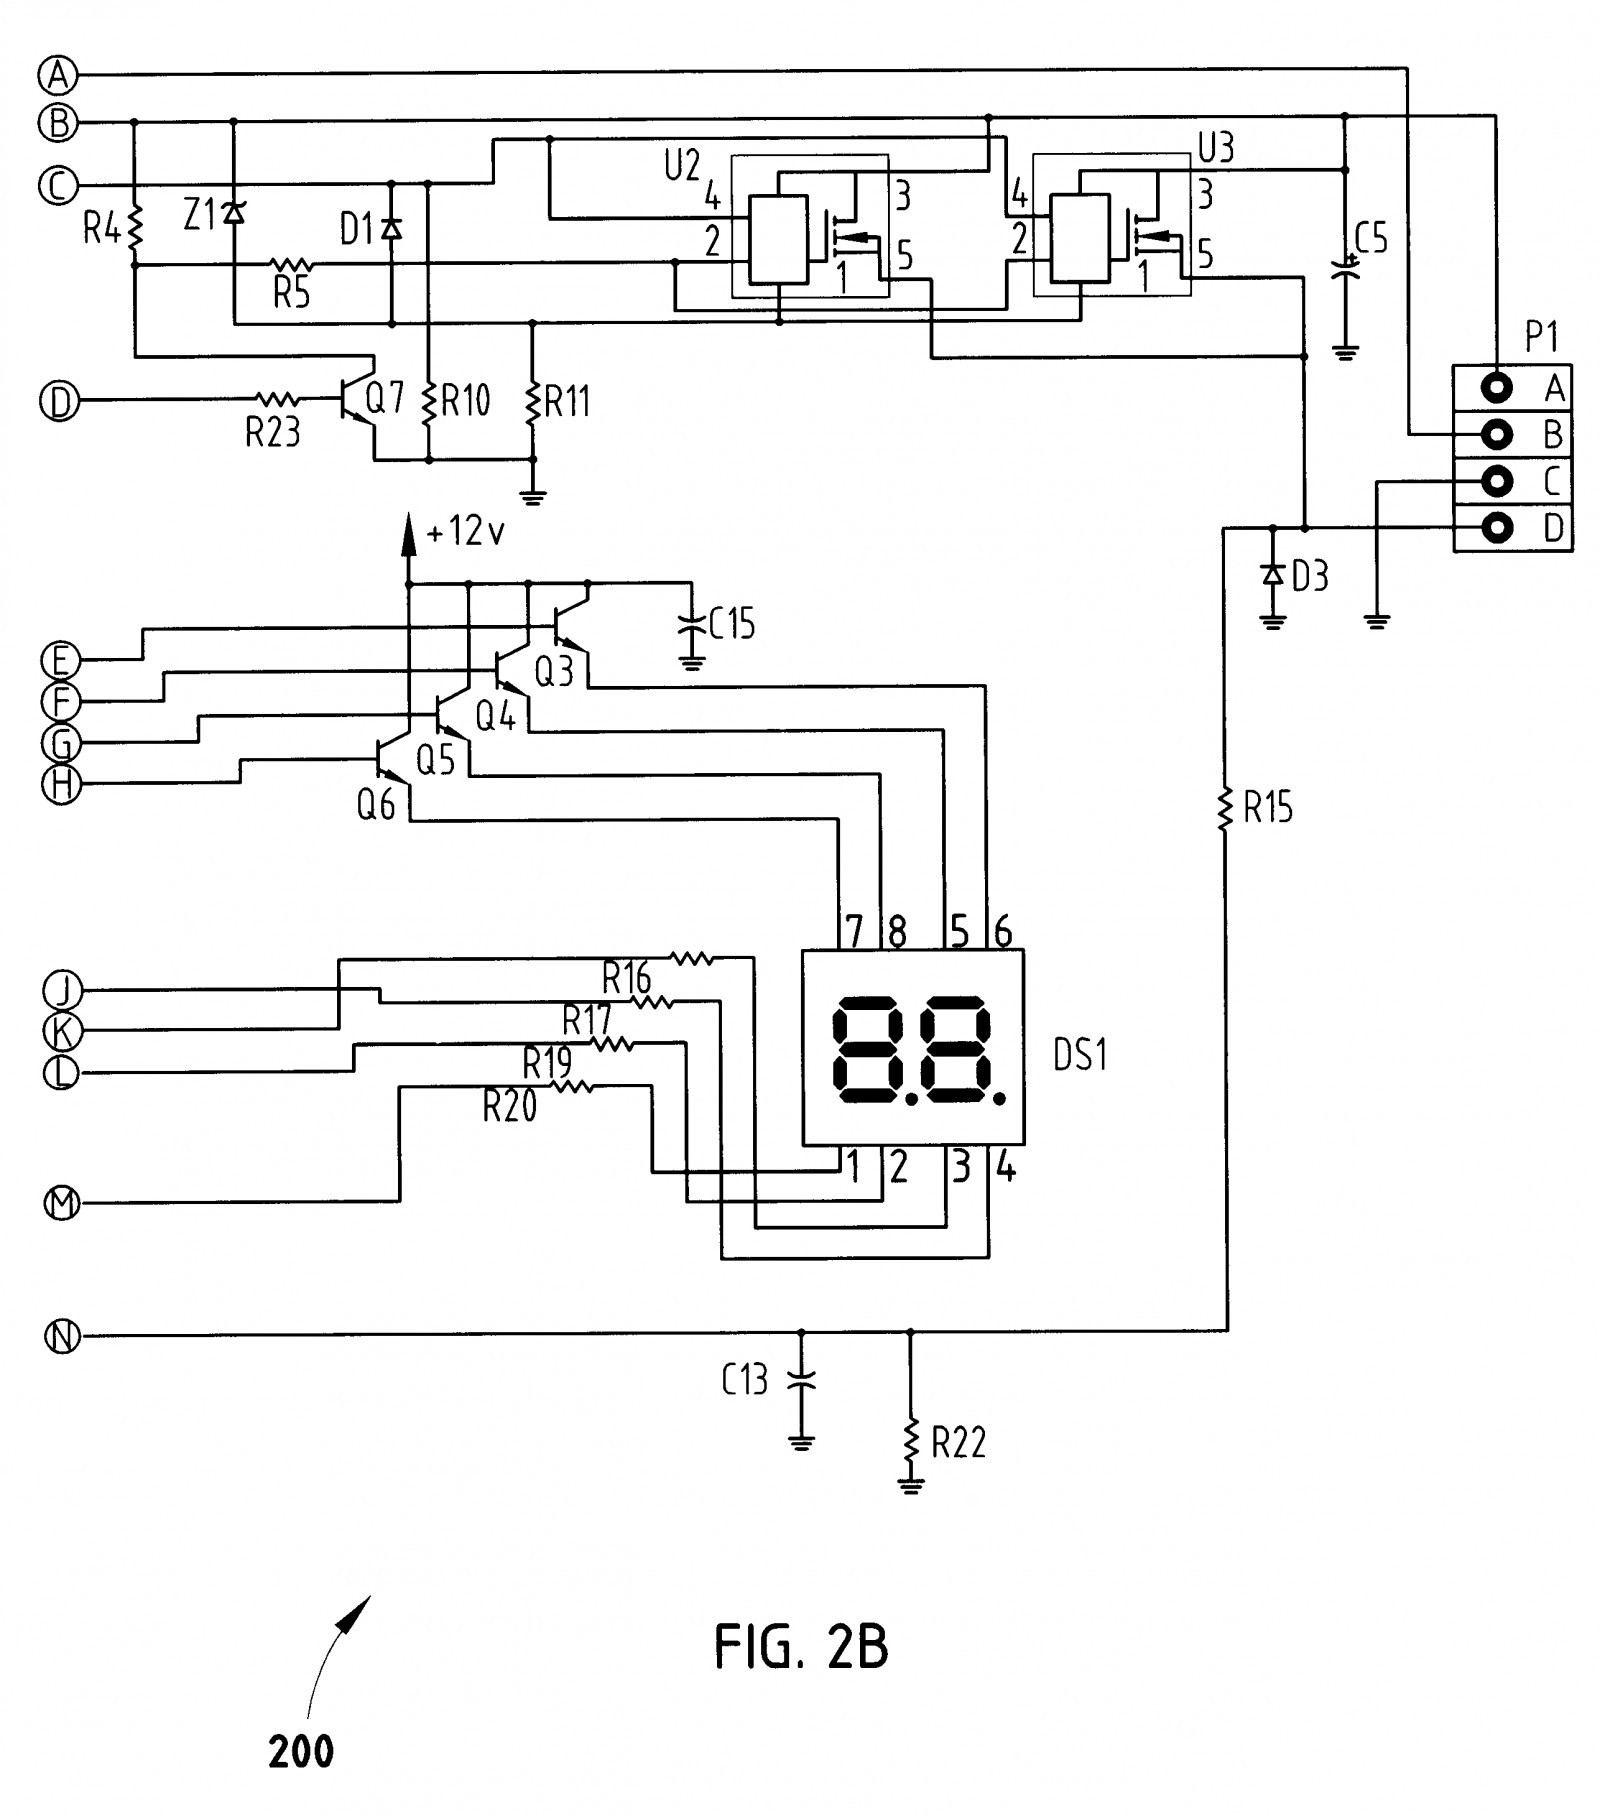 curtis controller wiring diagram Collection-Hopkins Brake Controller Wiring Diagram Electrics Schematic For Curt 13-o